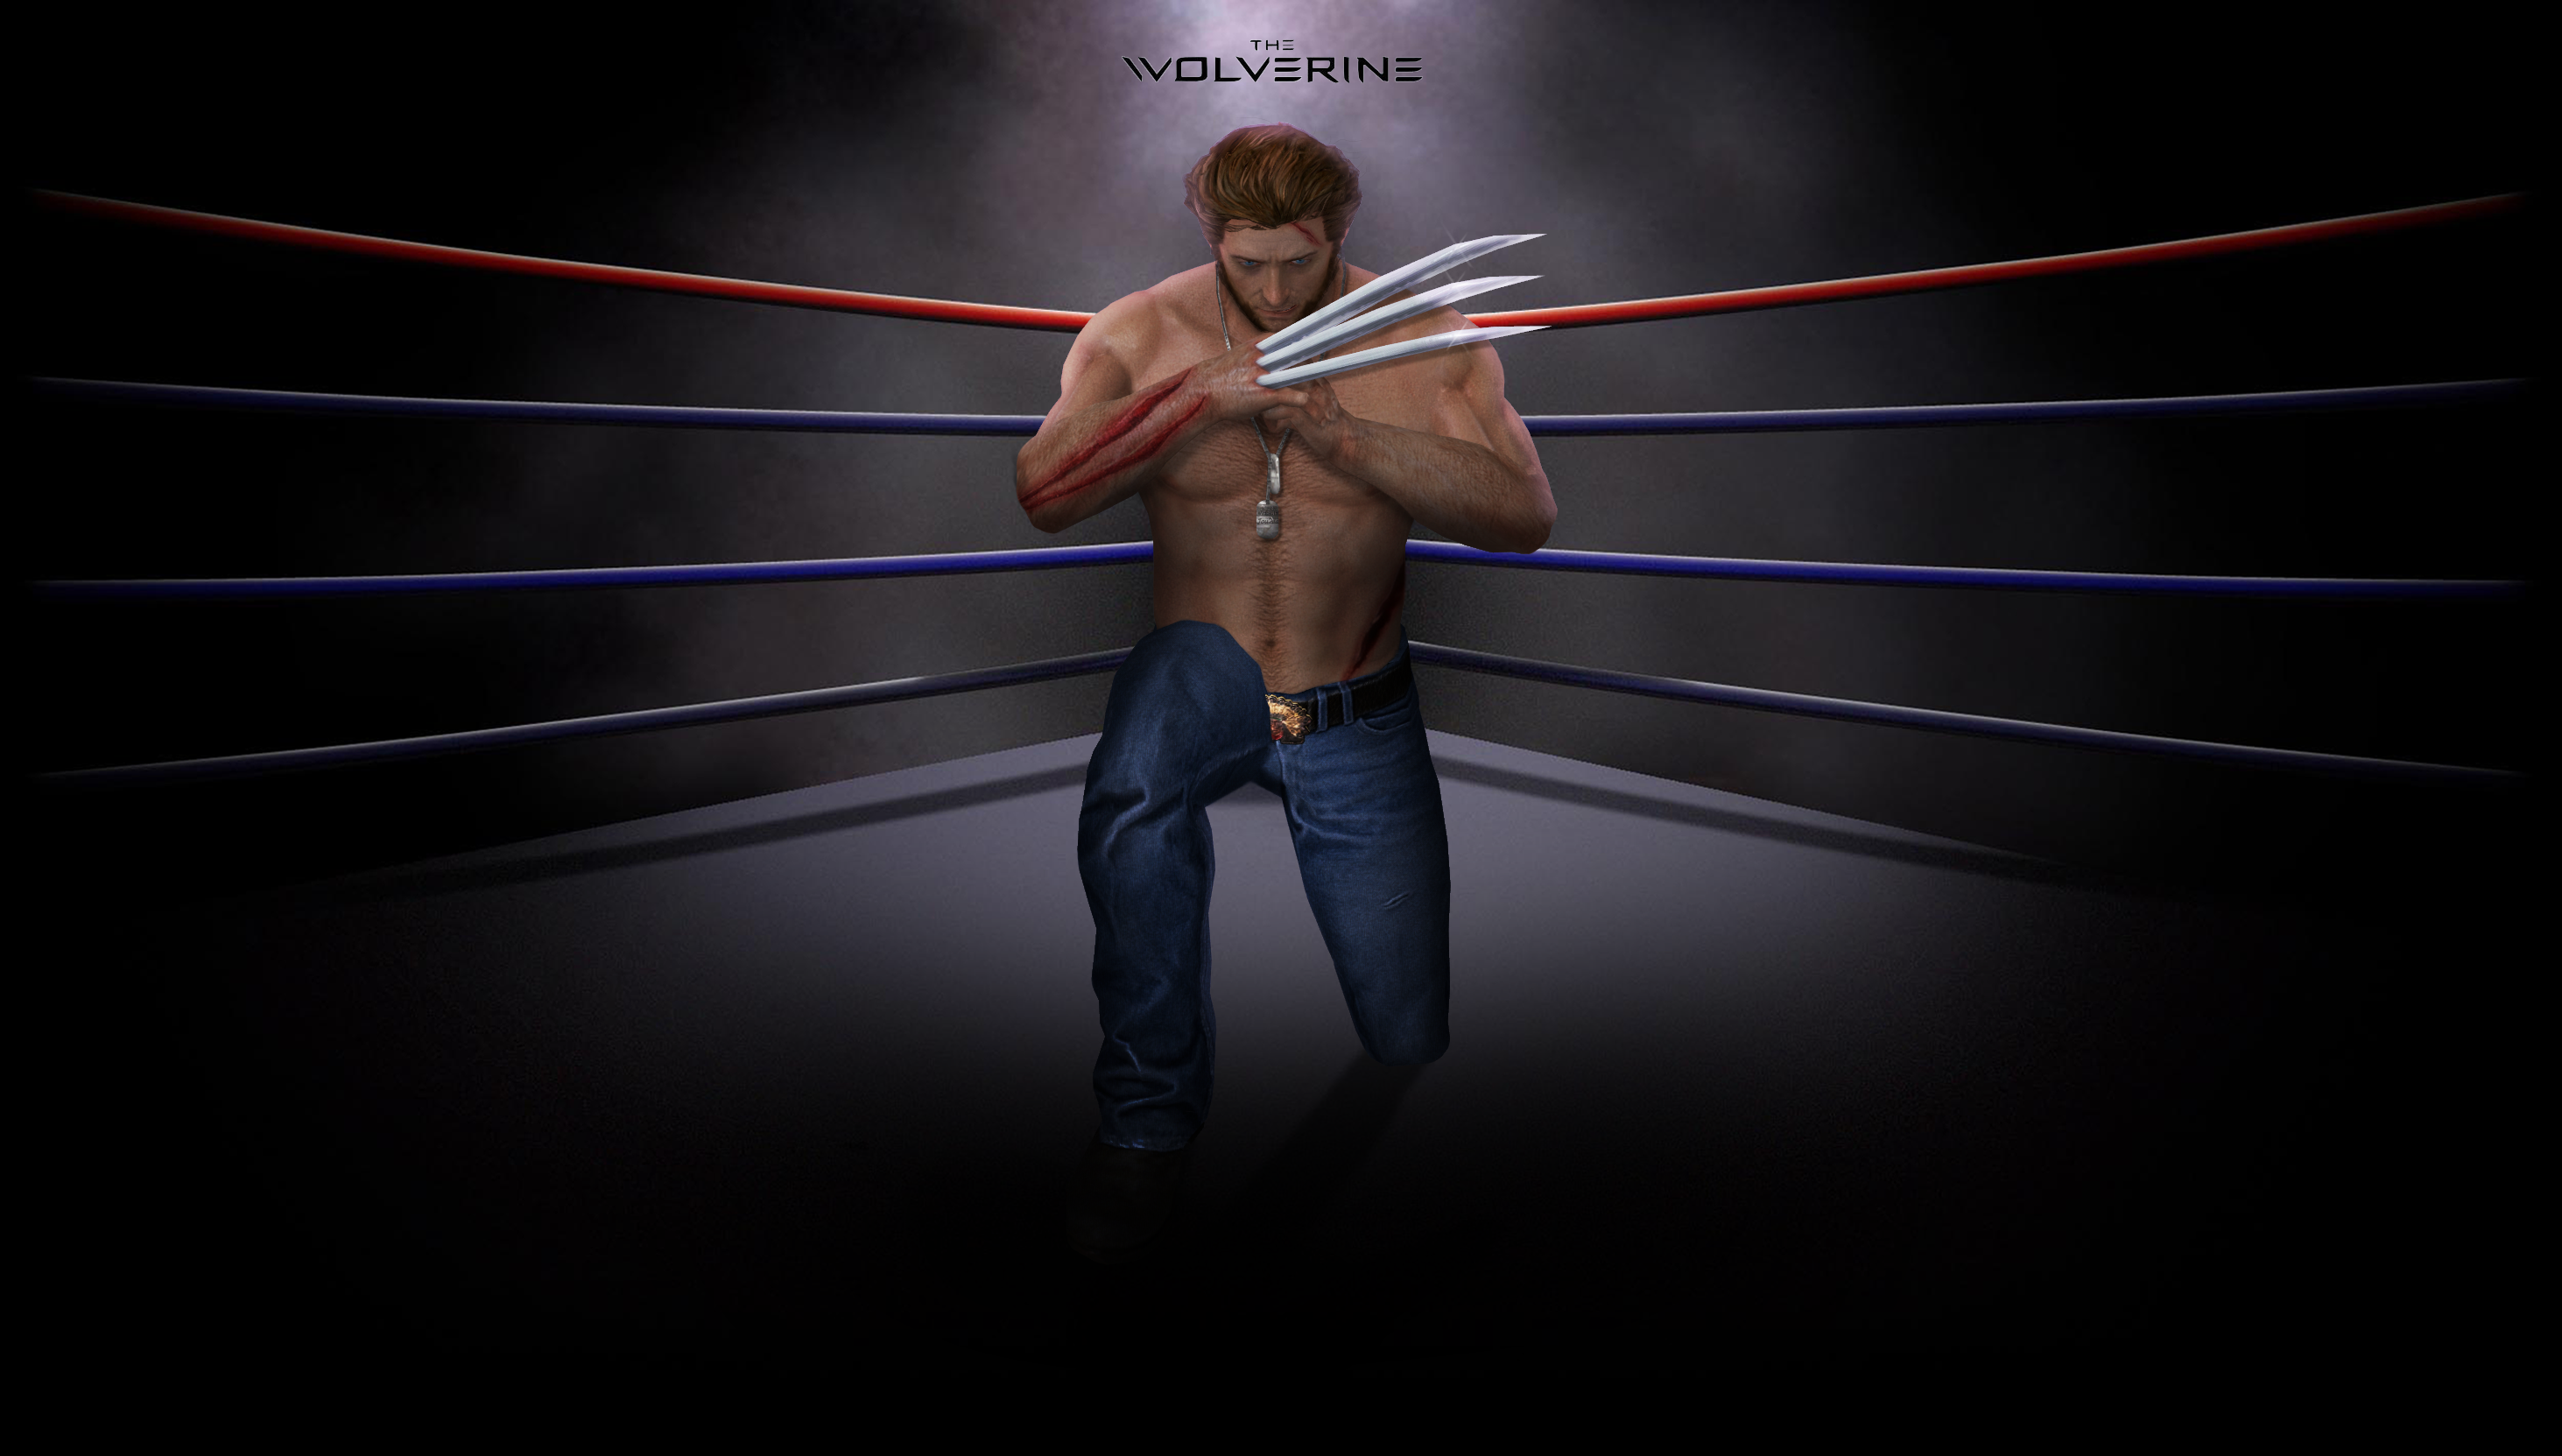 Wolverine on boxing ring by Taitiii on DeviantArt Empty Gym Wallpaper